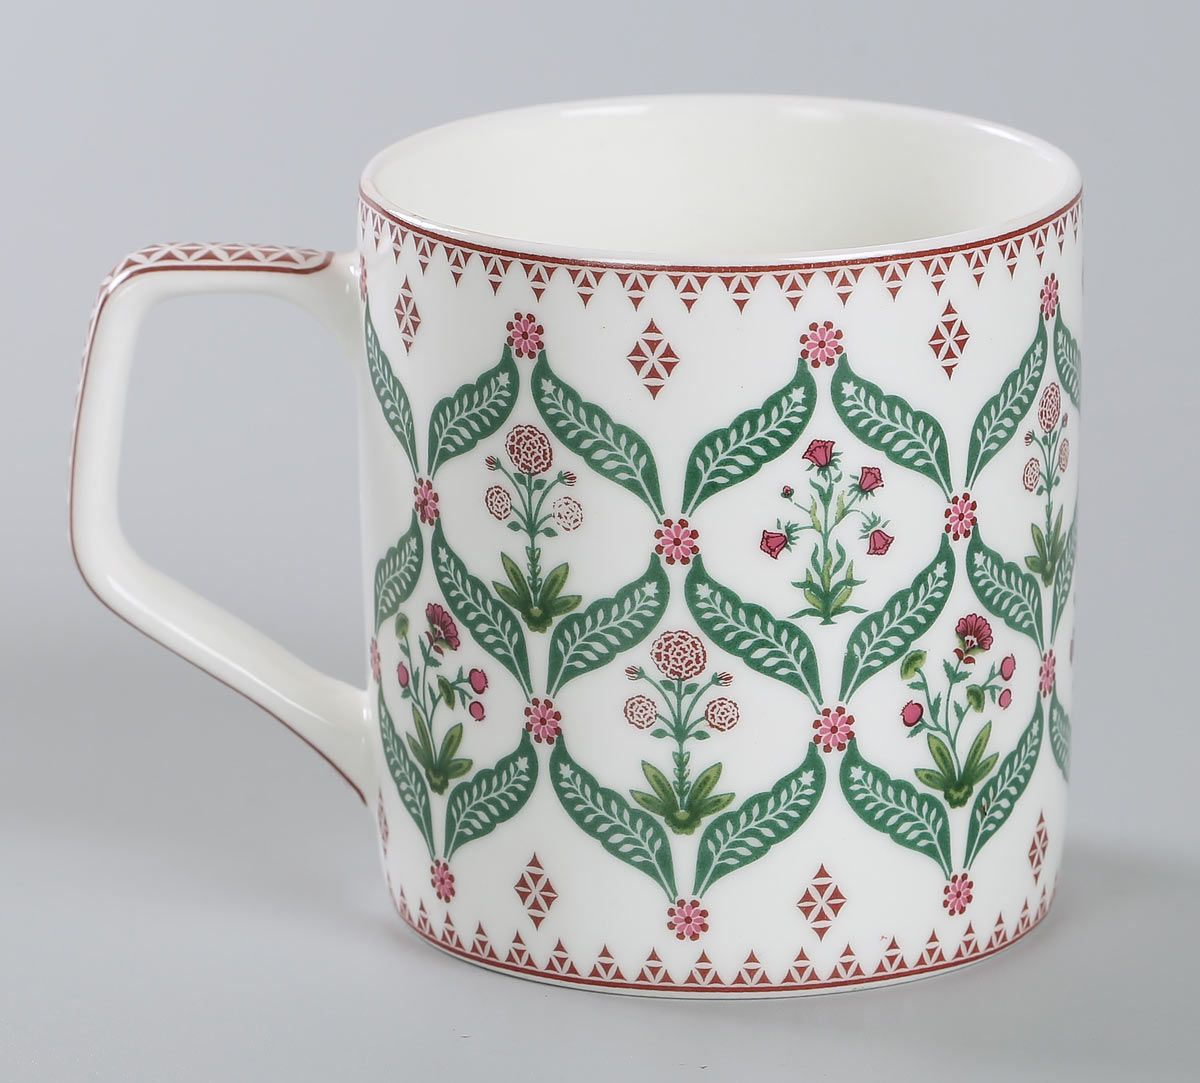 India Circus Blooming Dahlia Mug Set of 6